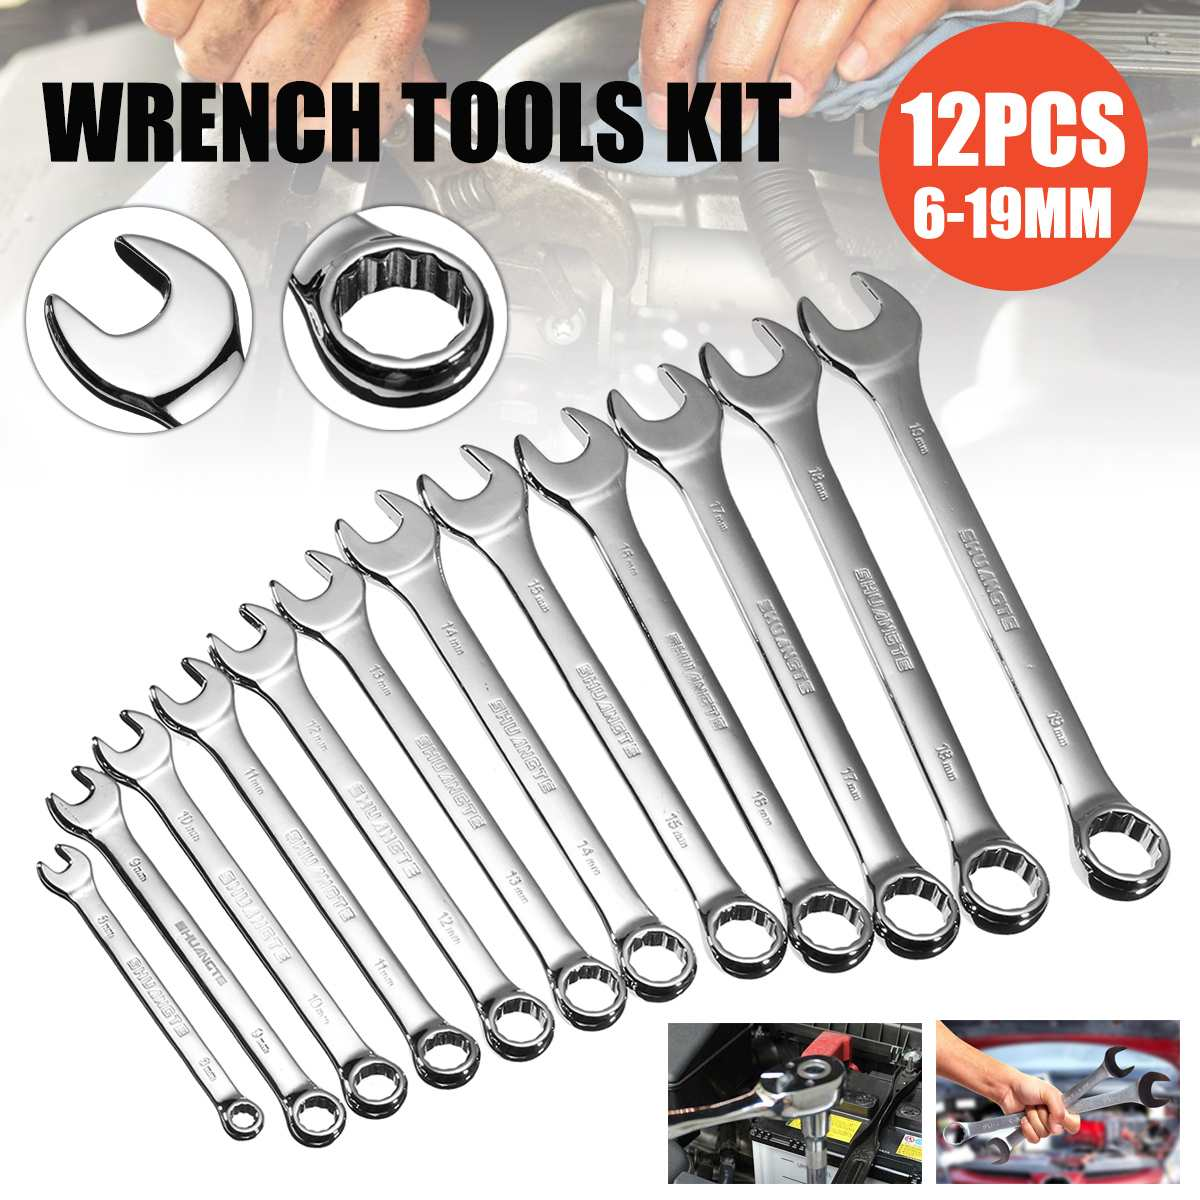 Multitool Key Ratchet Spanners Set of Tools Set of Wrenches Universal Wrench Tool for Car Repair Car Tools|Wrench| |  - title=